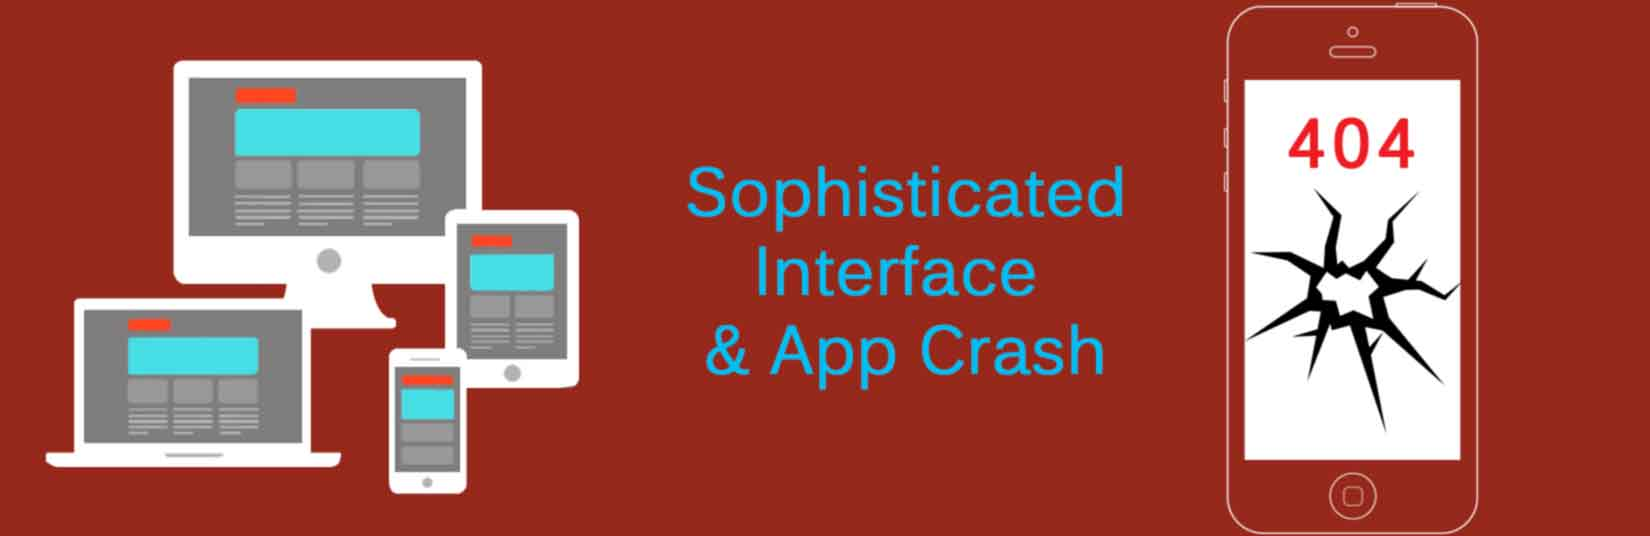 Sophisticated interface and app crash